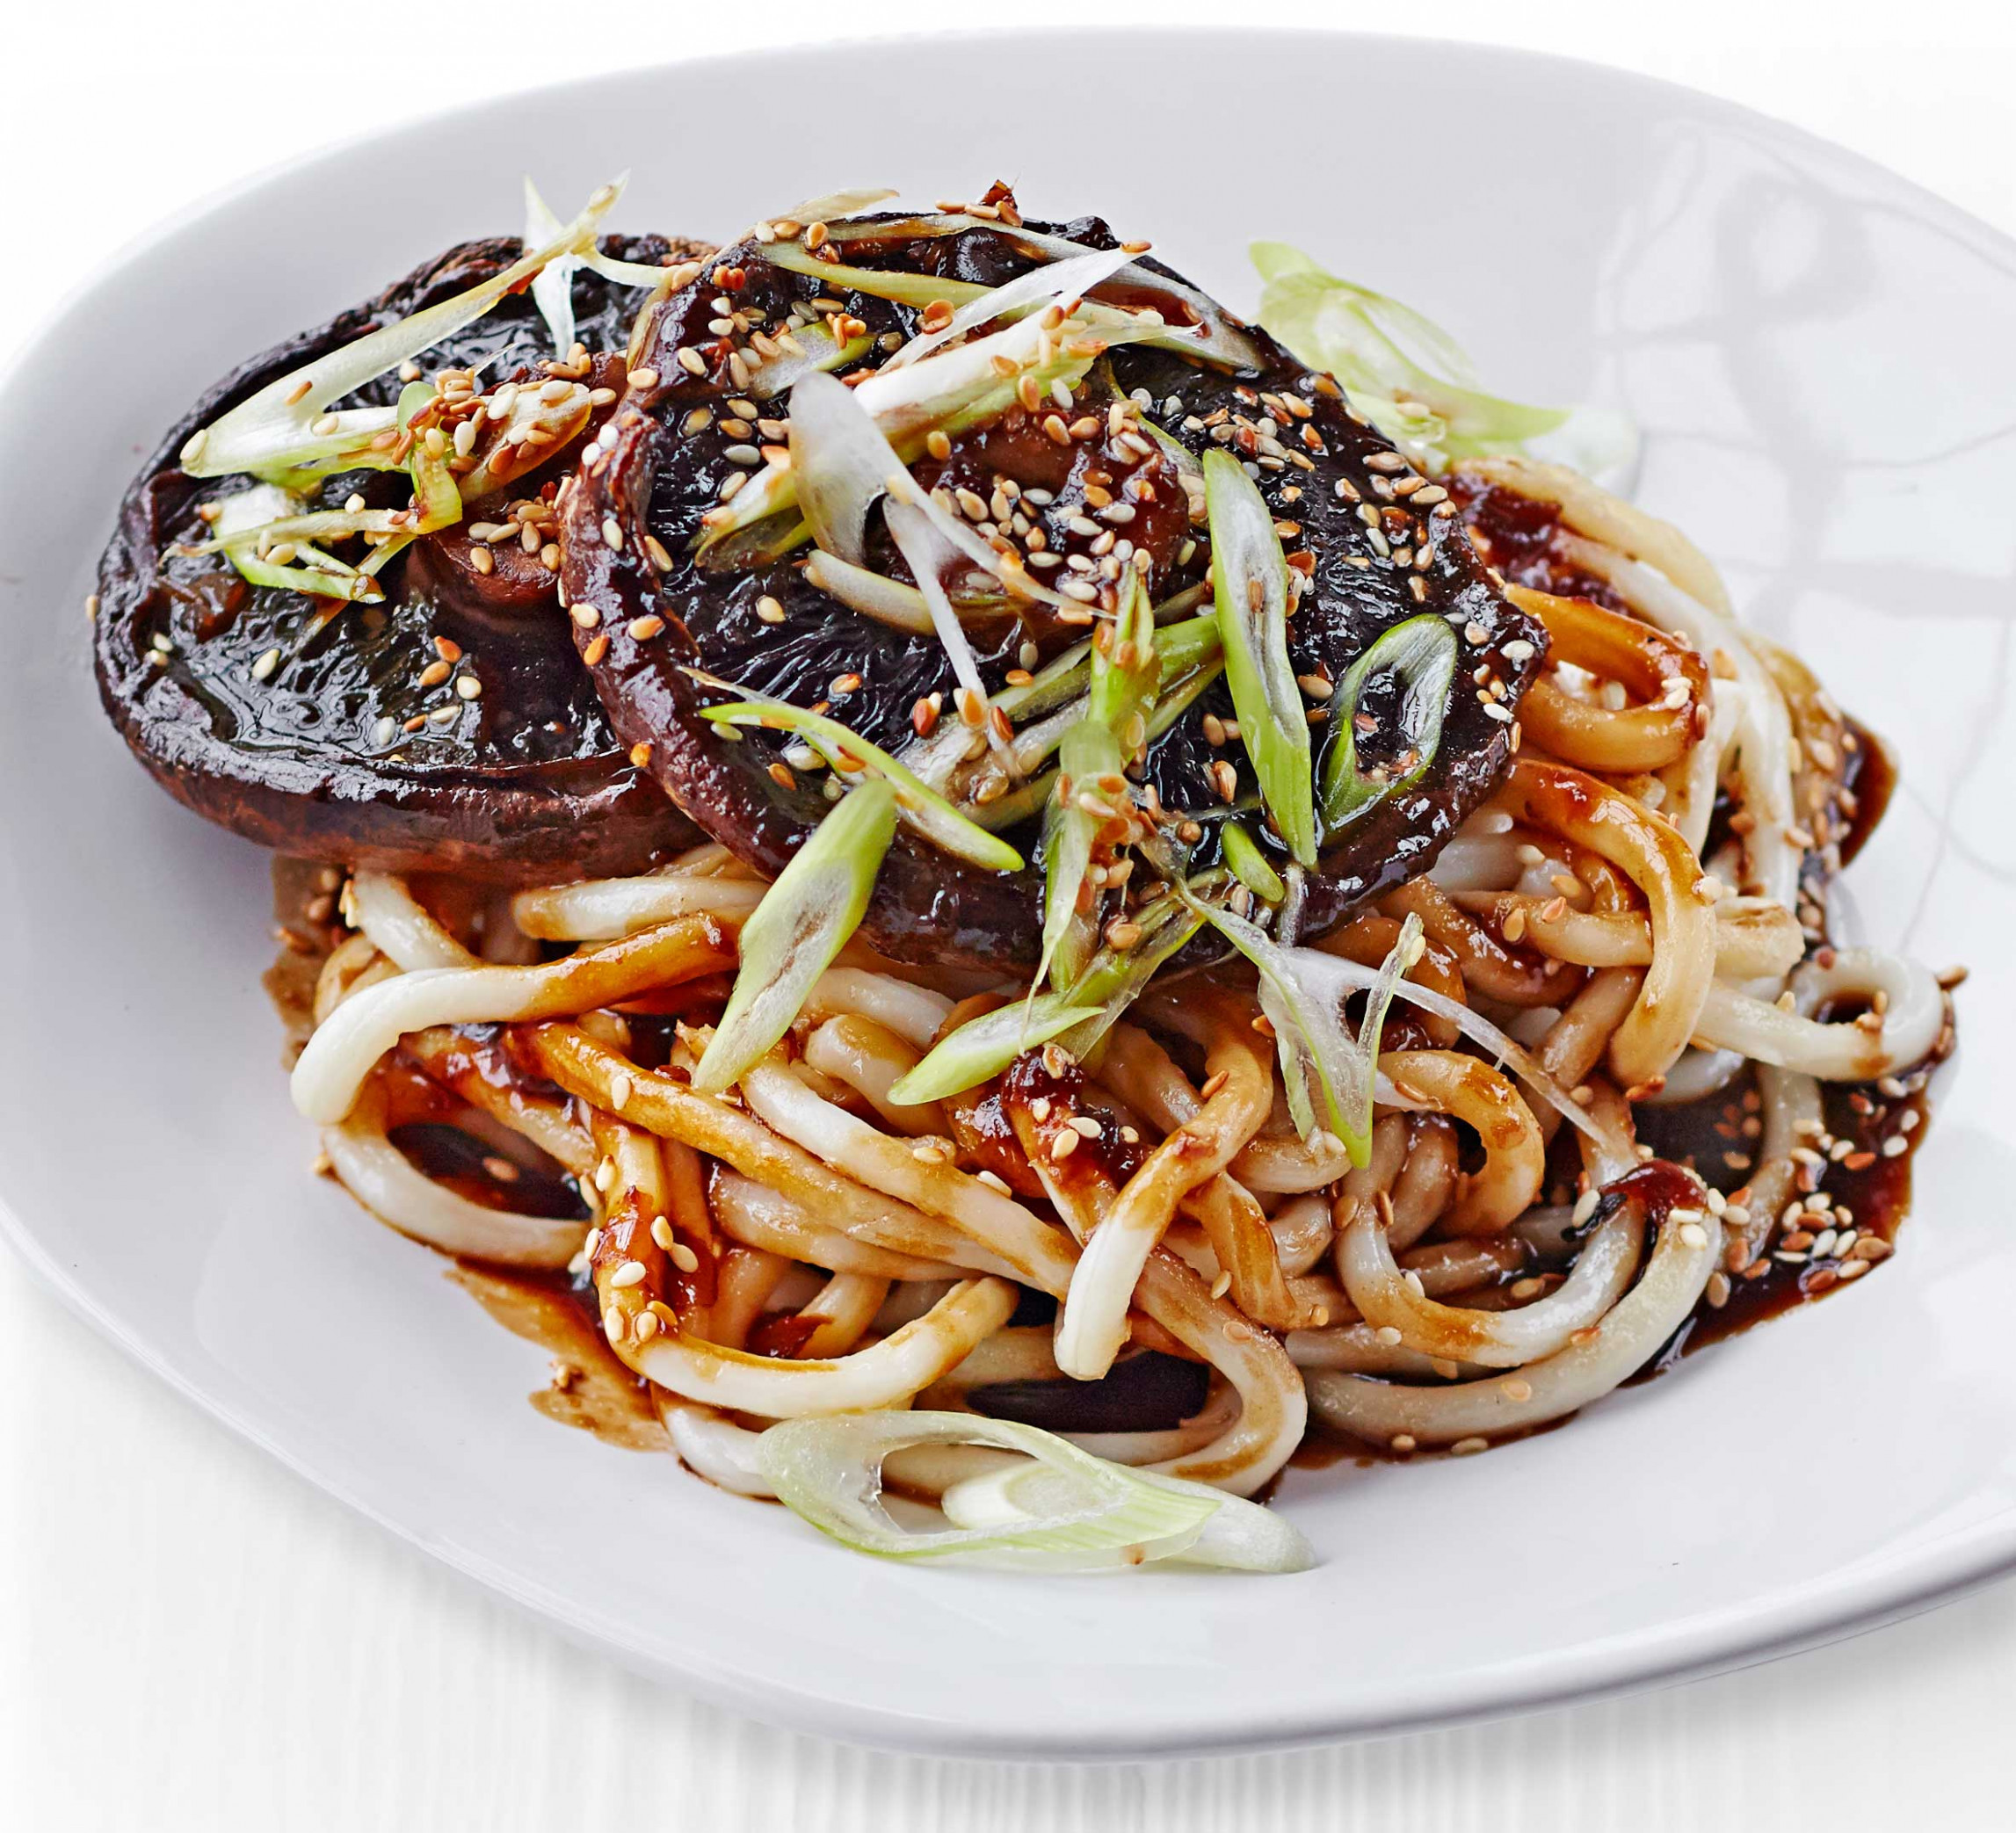 Saucy Miso Mushrooms With Udon Noodles - Recipe Vegetarian Udon Noodle Soup